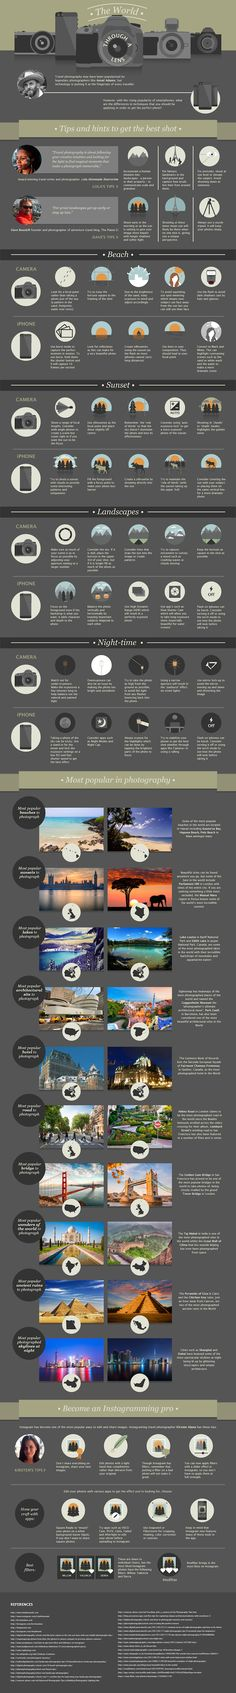 Infographic: Photography Tips, From the Camera to the Smartphone | TravelPulse